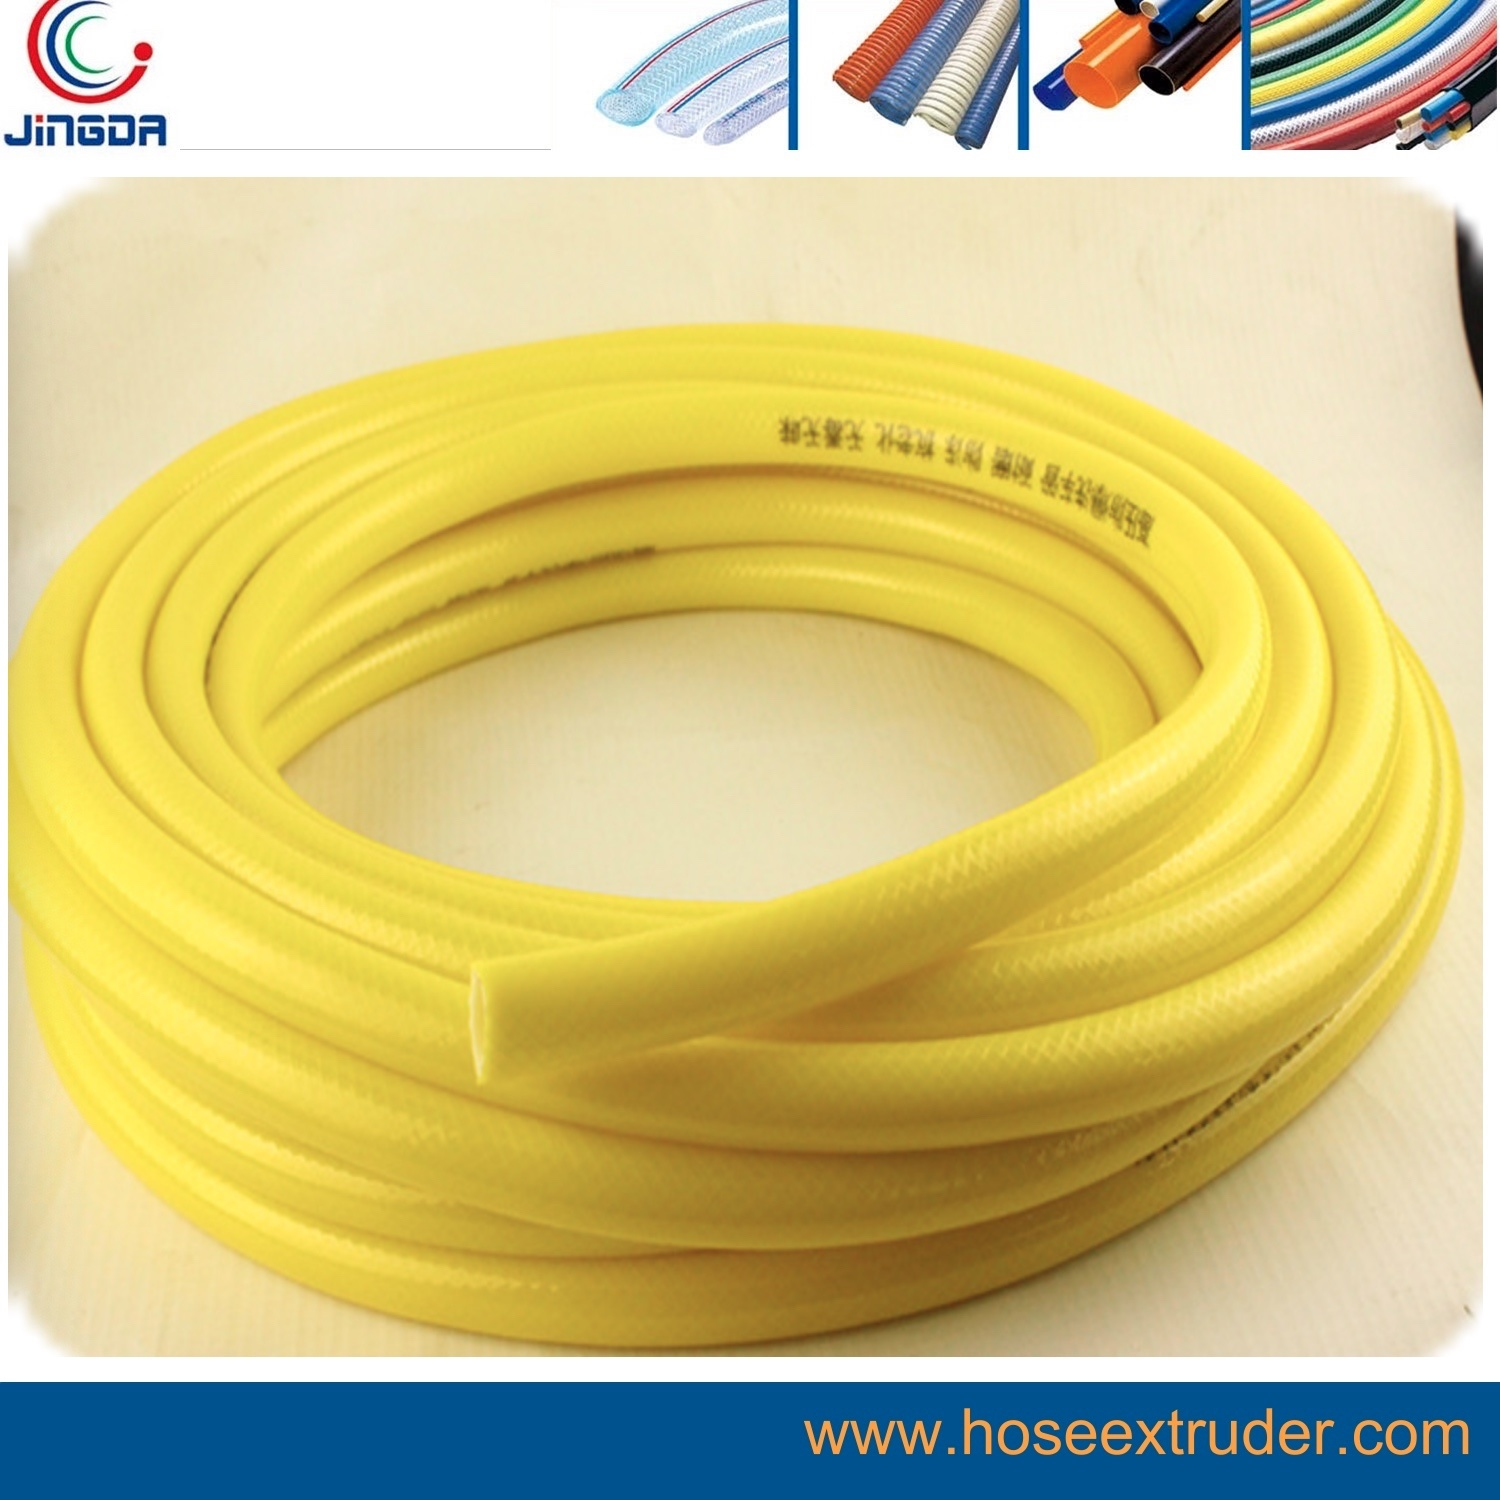 "100 Feet Made in USA 3//8/"" Reinforced Vinyl Tubing Braided Reinforced"